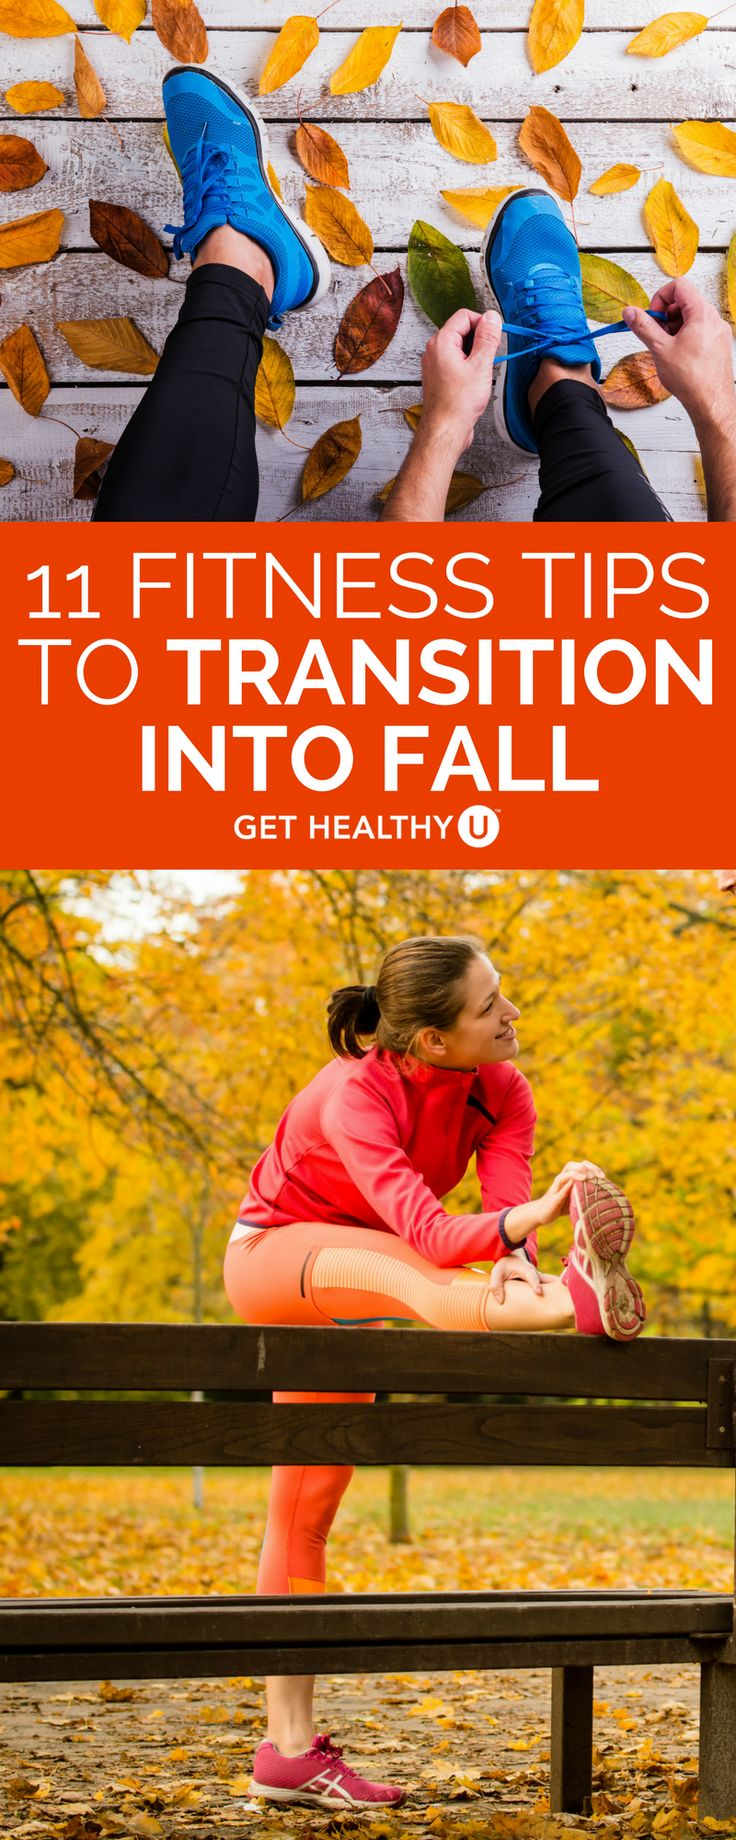 Fitness And Workout Tips 2017 Check Out Our Article On The 11 Best Things To Do To Transition